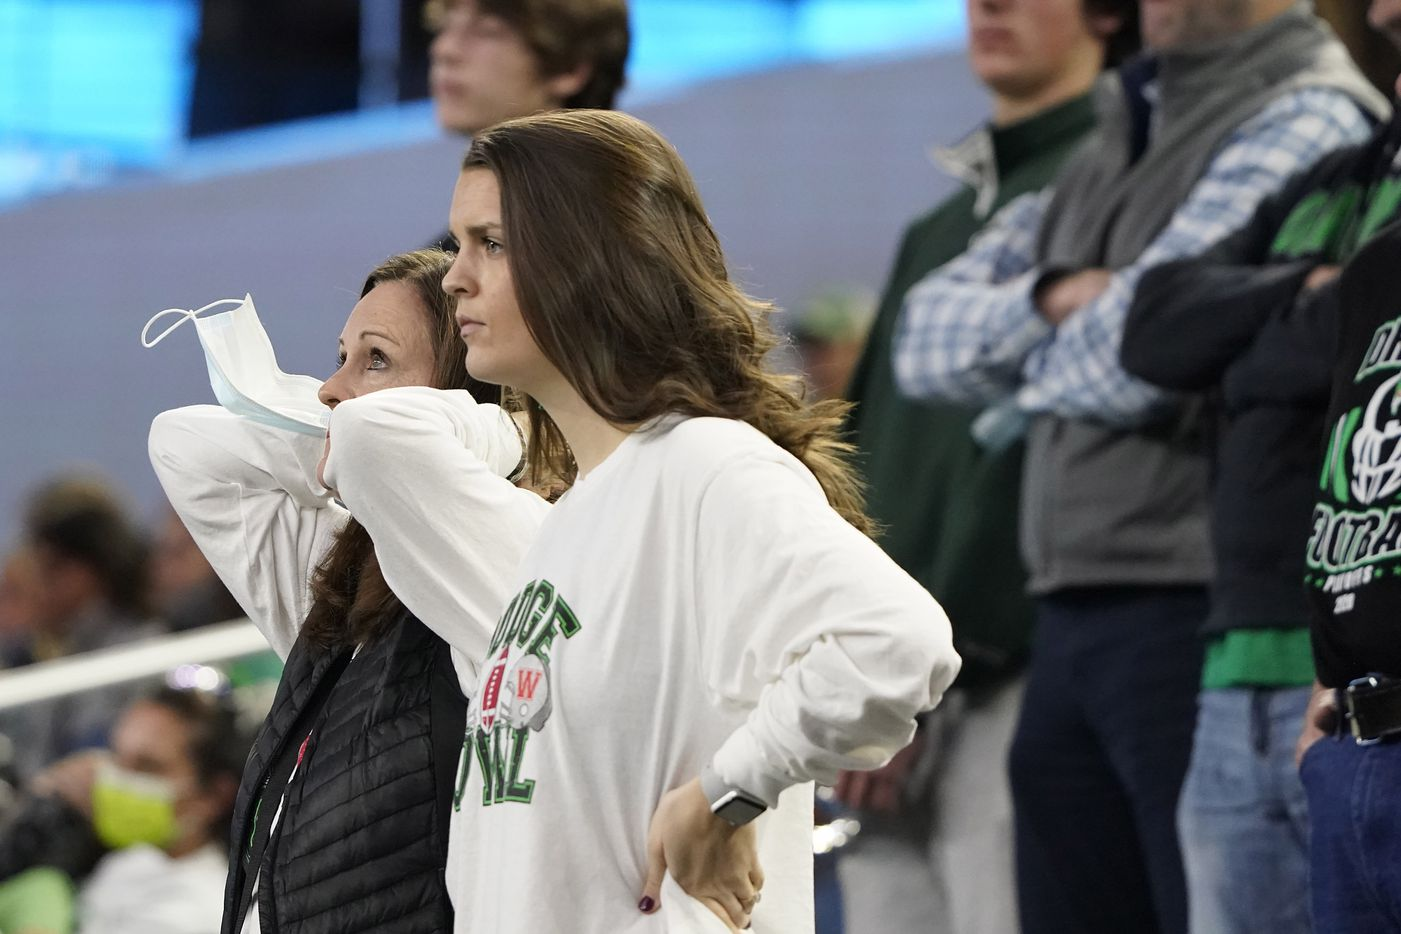 Alexis Dodge, wife of Southlake Carroll head coach Riley Dodge, watches during the third quarter of the Class 6A Division I state football championship game against Austin Westlake at AT&T Stadium on Saturday, Jan. 16, 2021, in Arlington, Texas.